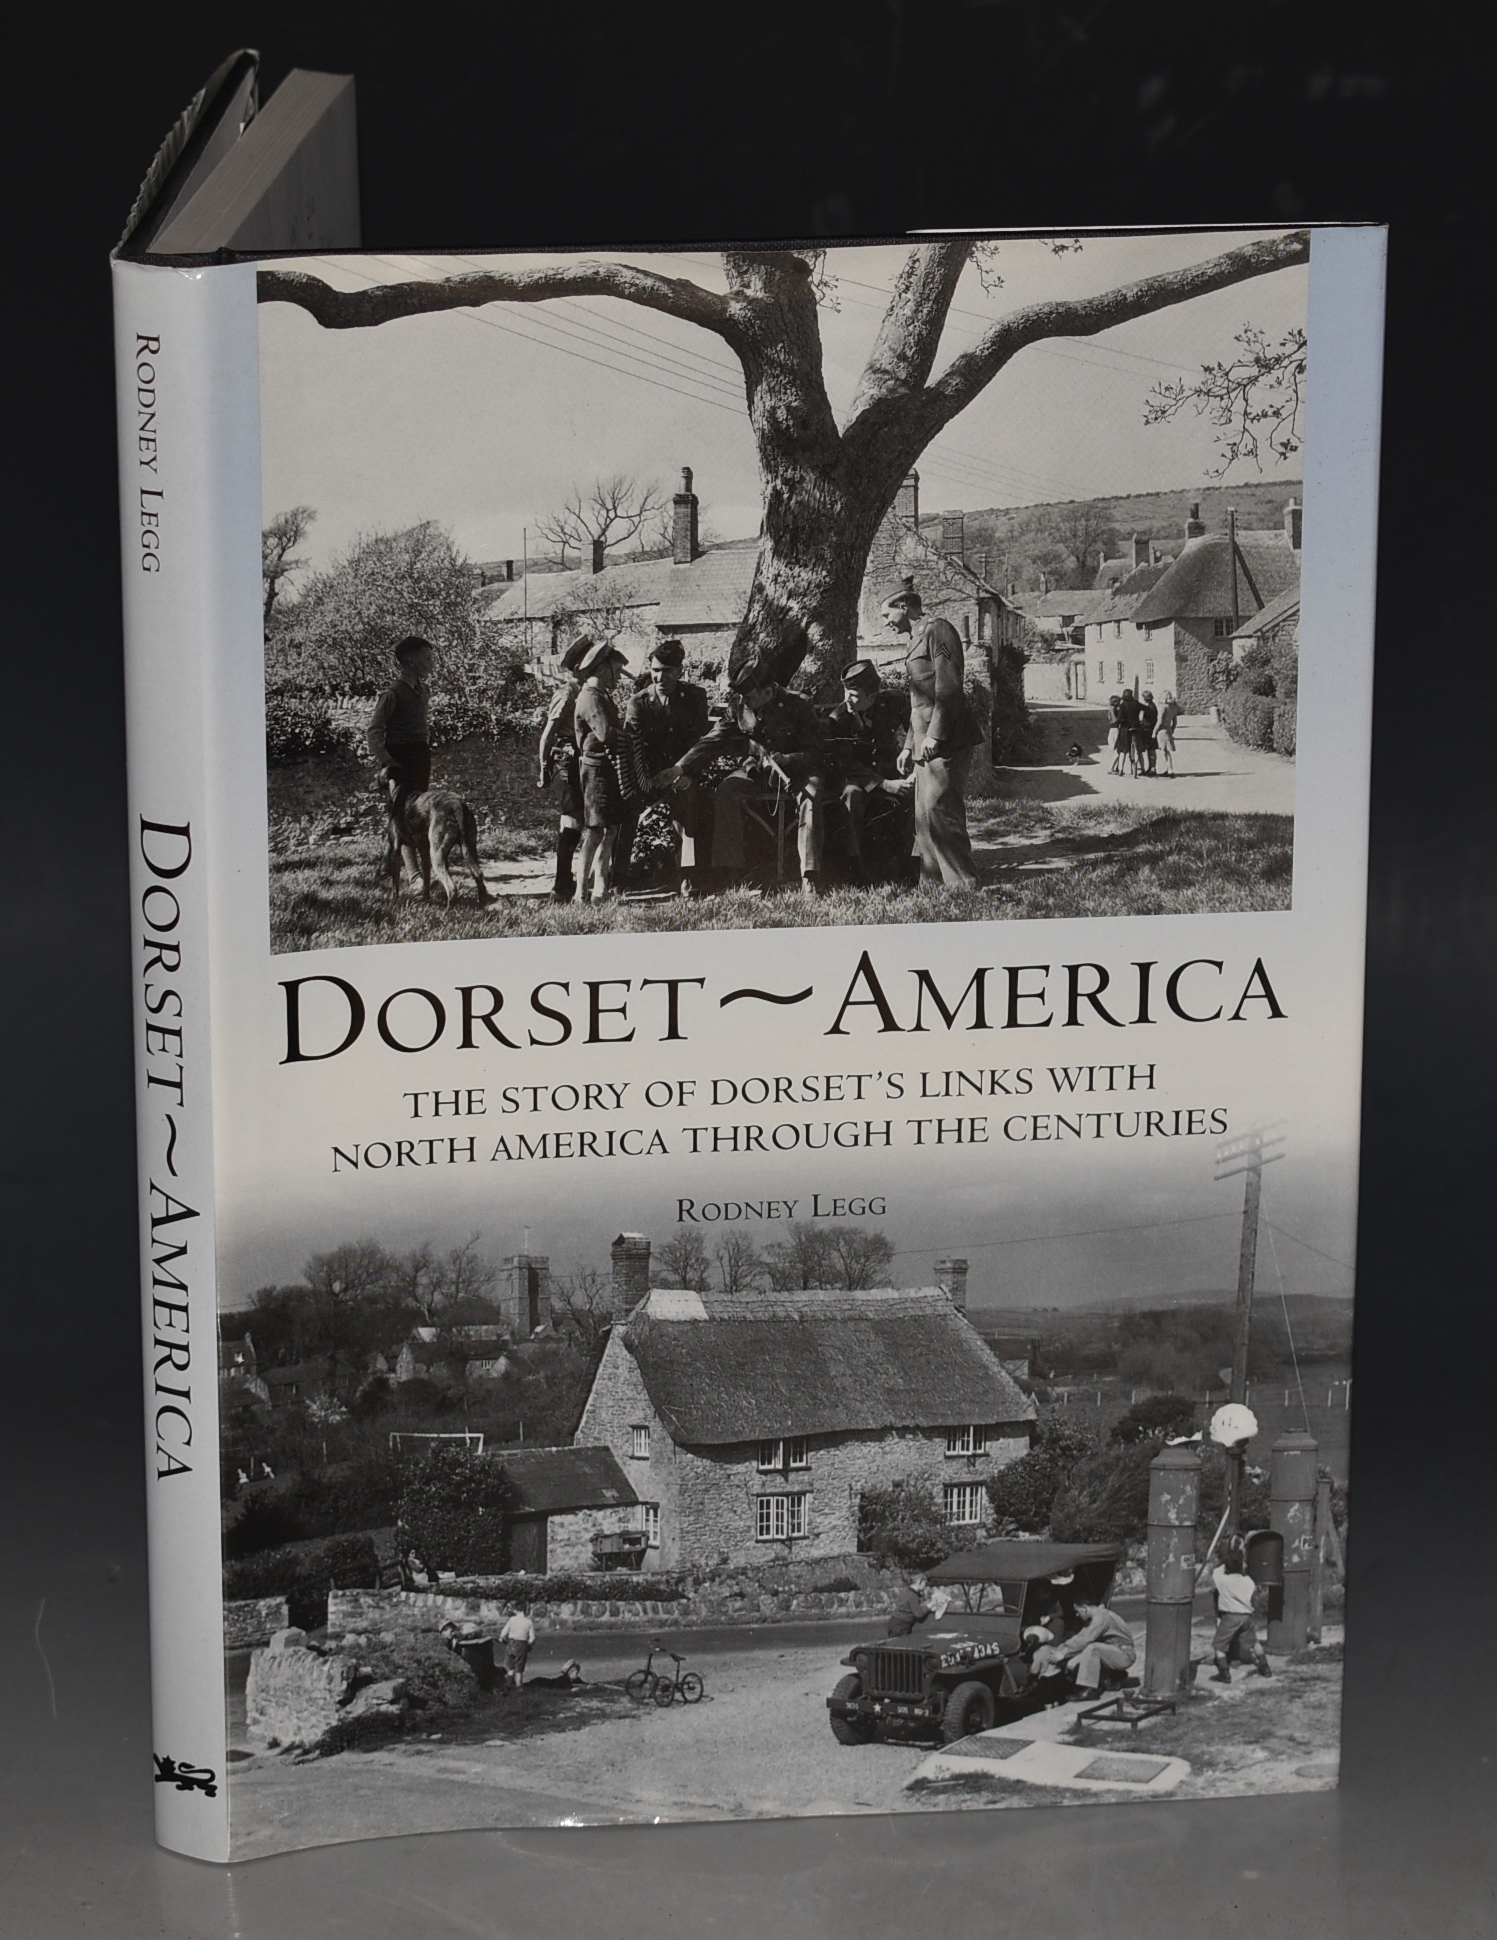 Image for Dorset - America The Story of Dorset's Links with North America Through The Centuries.